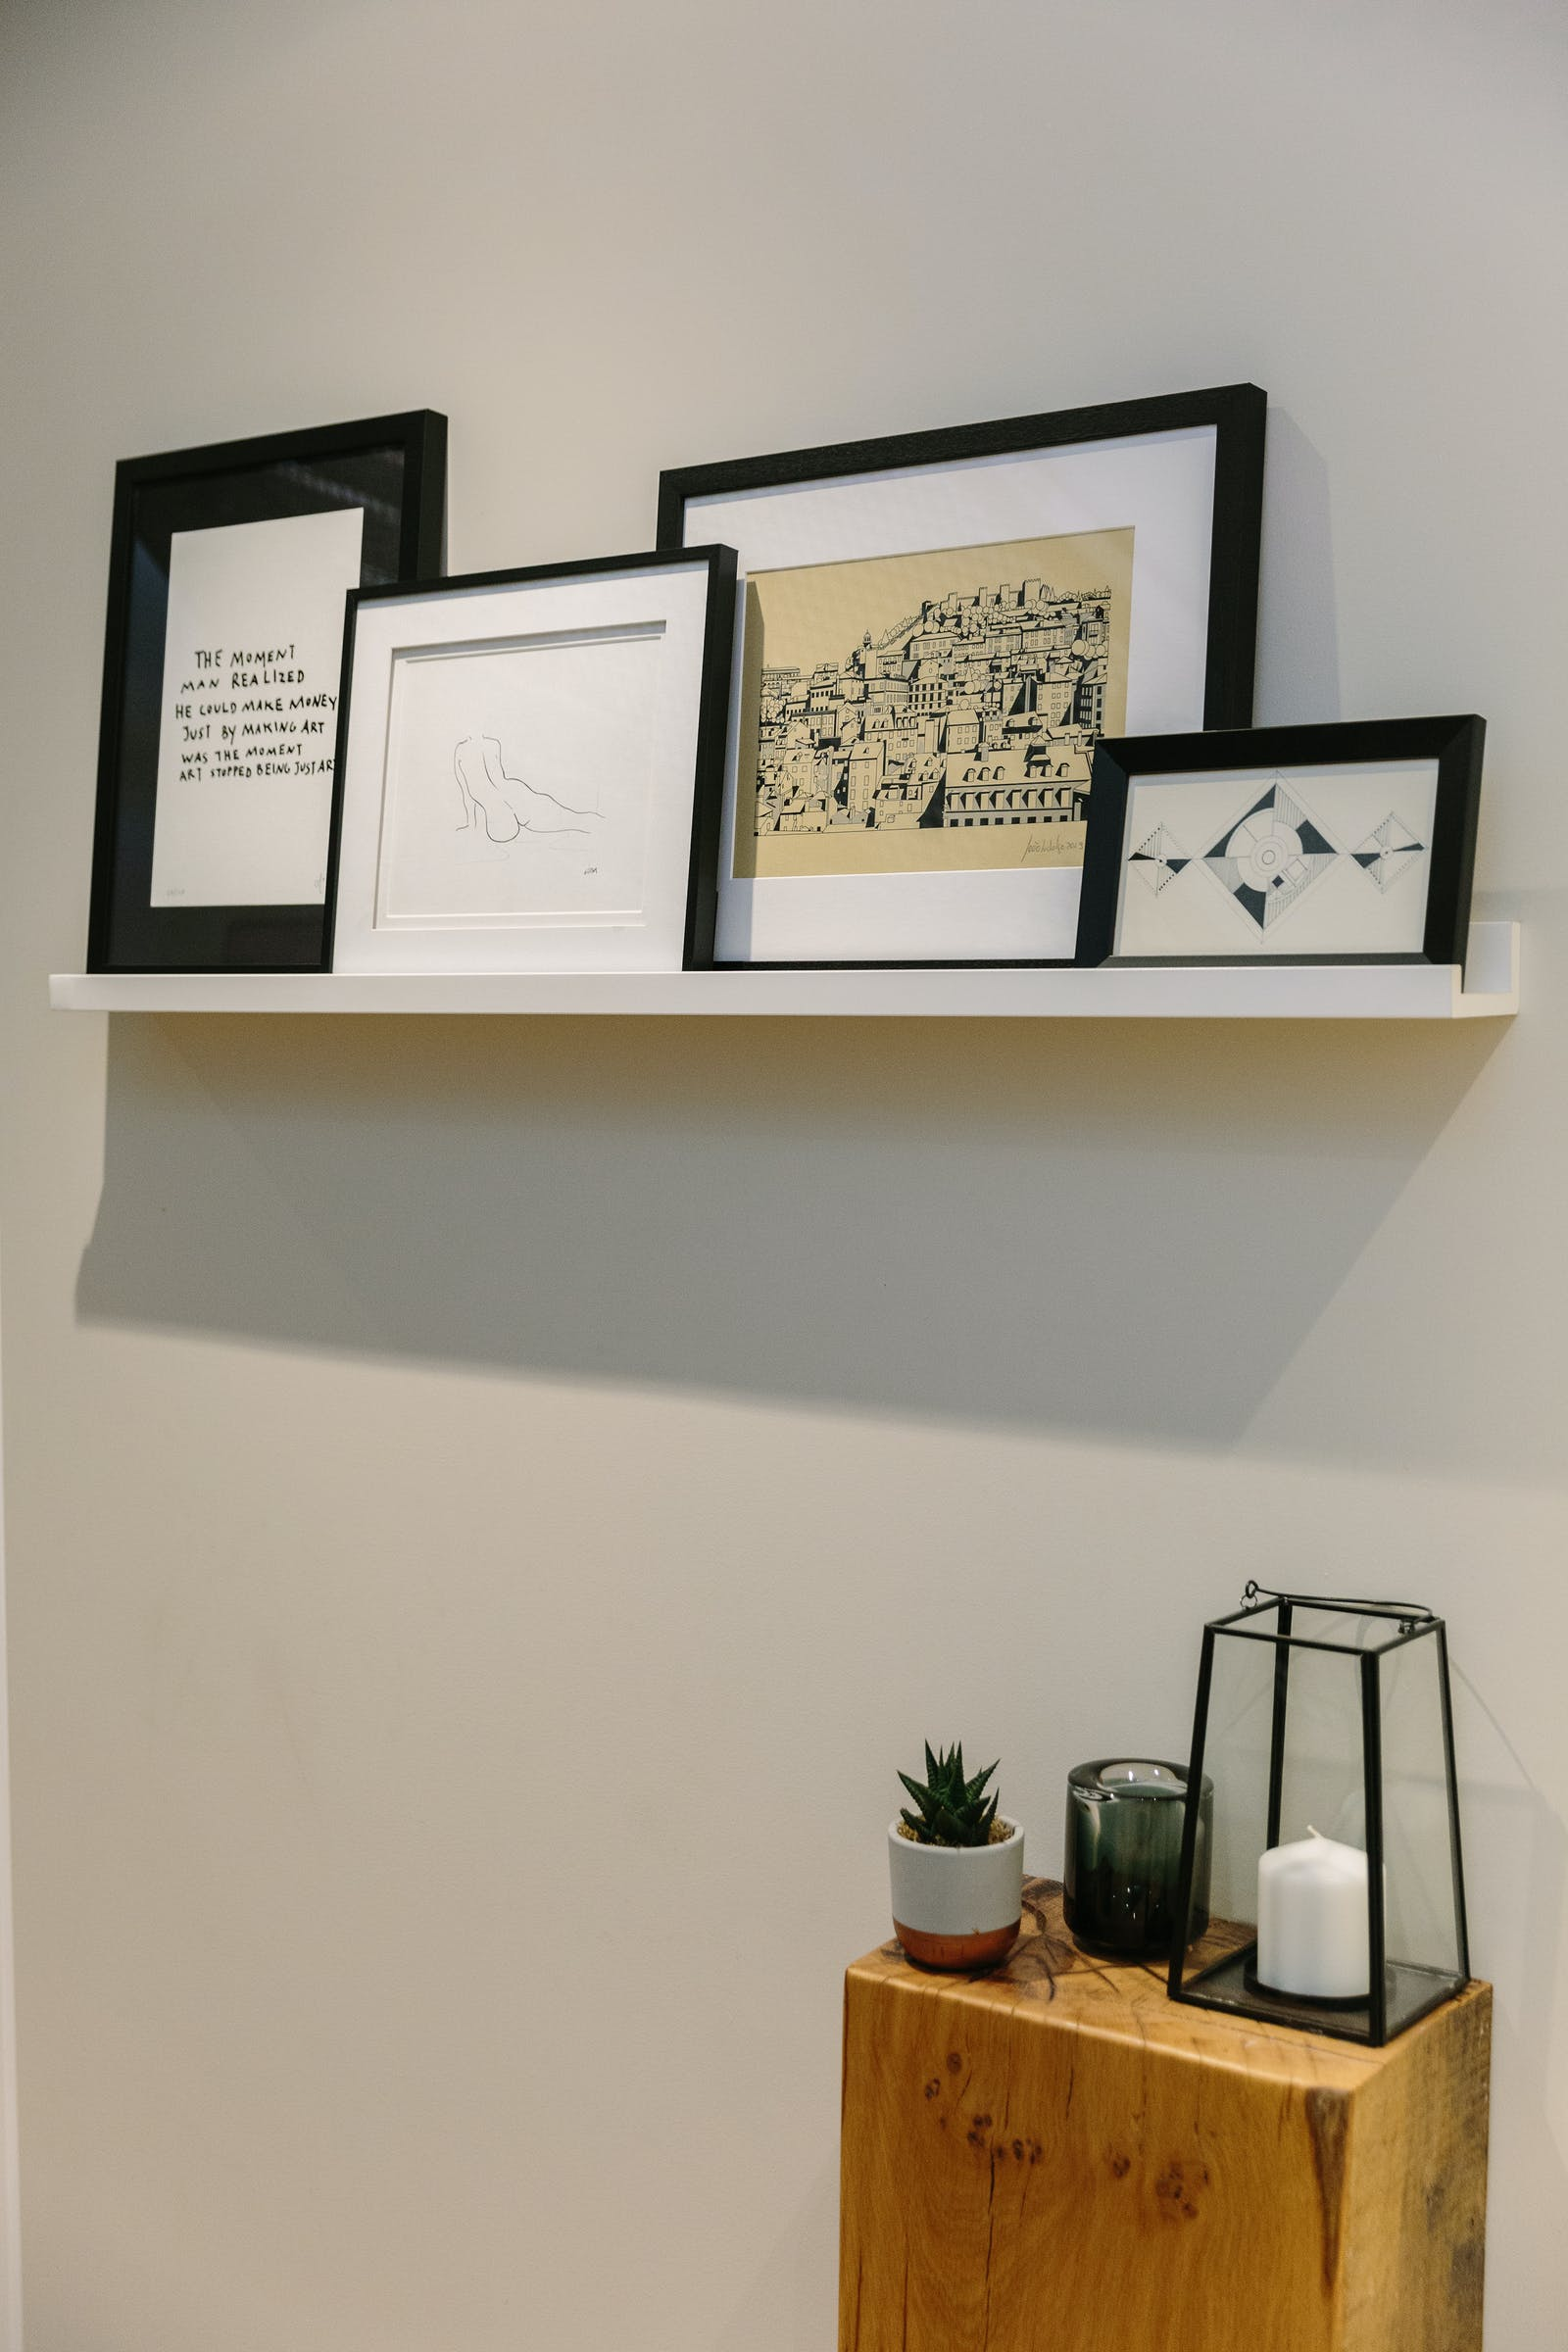 Picture ledge with art work and grey walls